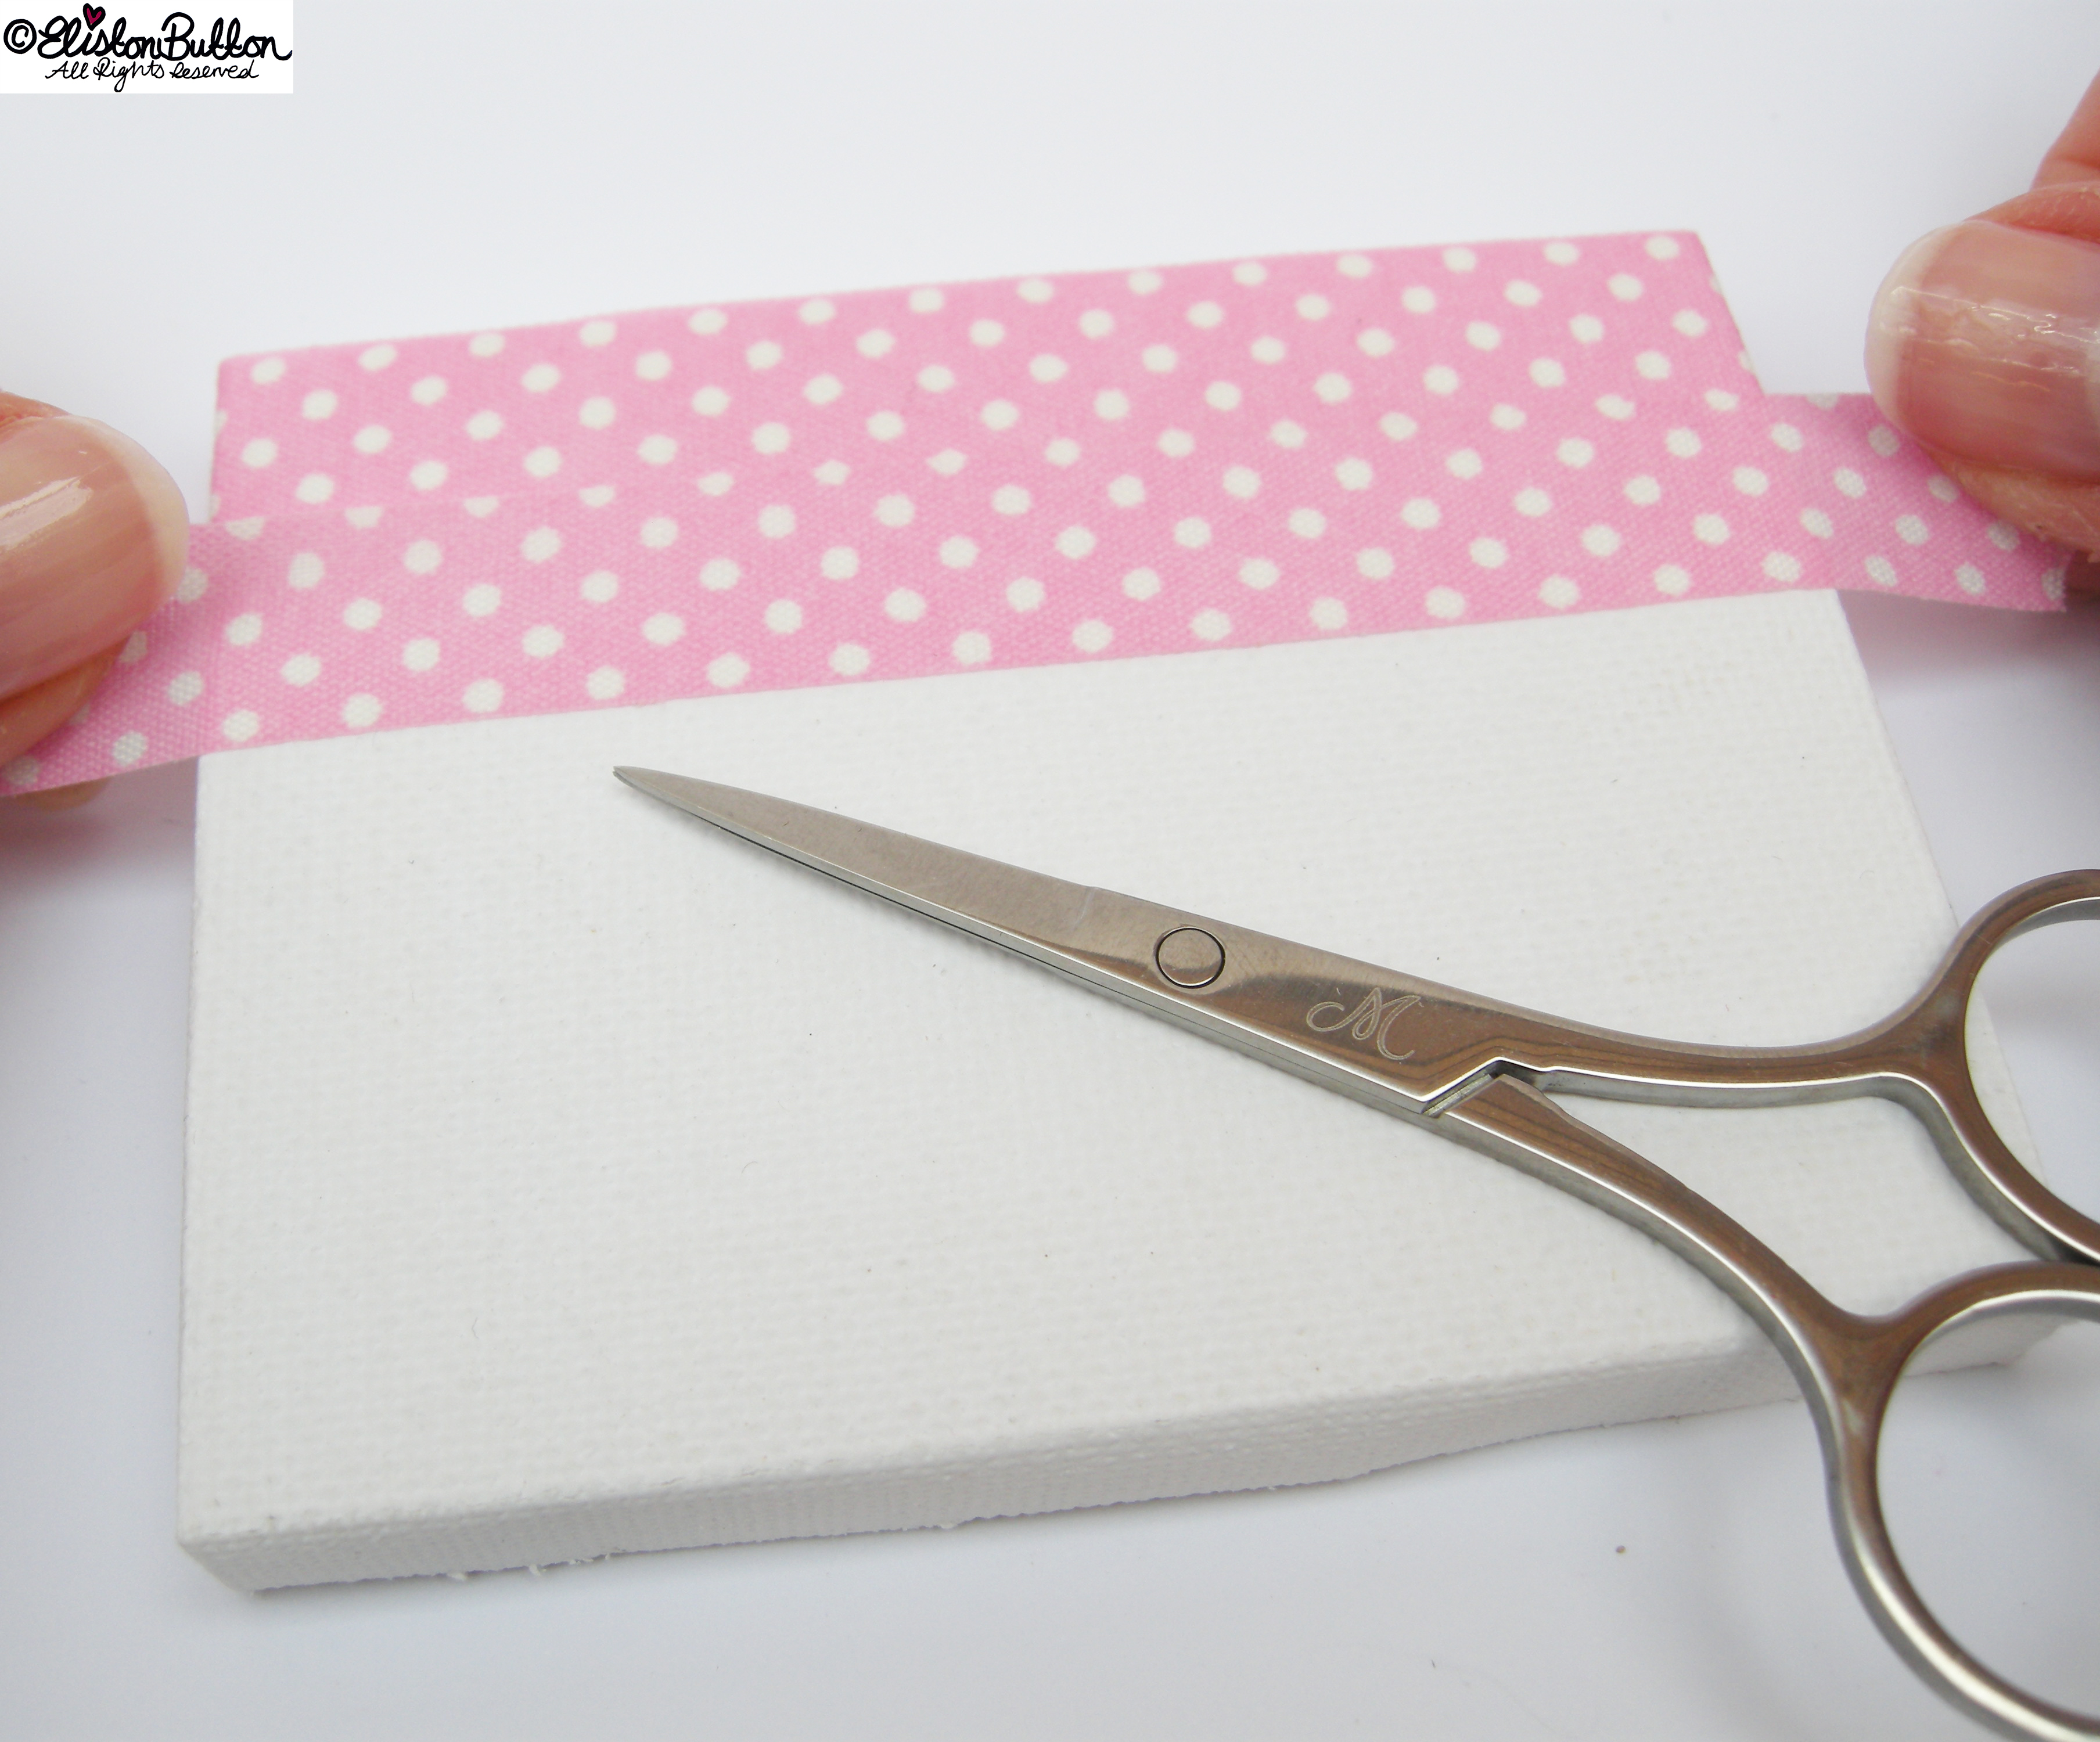 Second Strip of Fabric Tape - Mini Easel Tutorial at www.elistonbutton.com - Eliston Button - That Crafty Kid – Art, Design, Craft & Adventure.